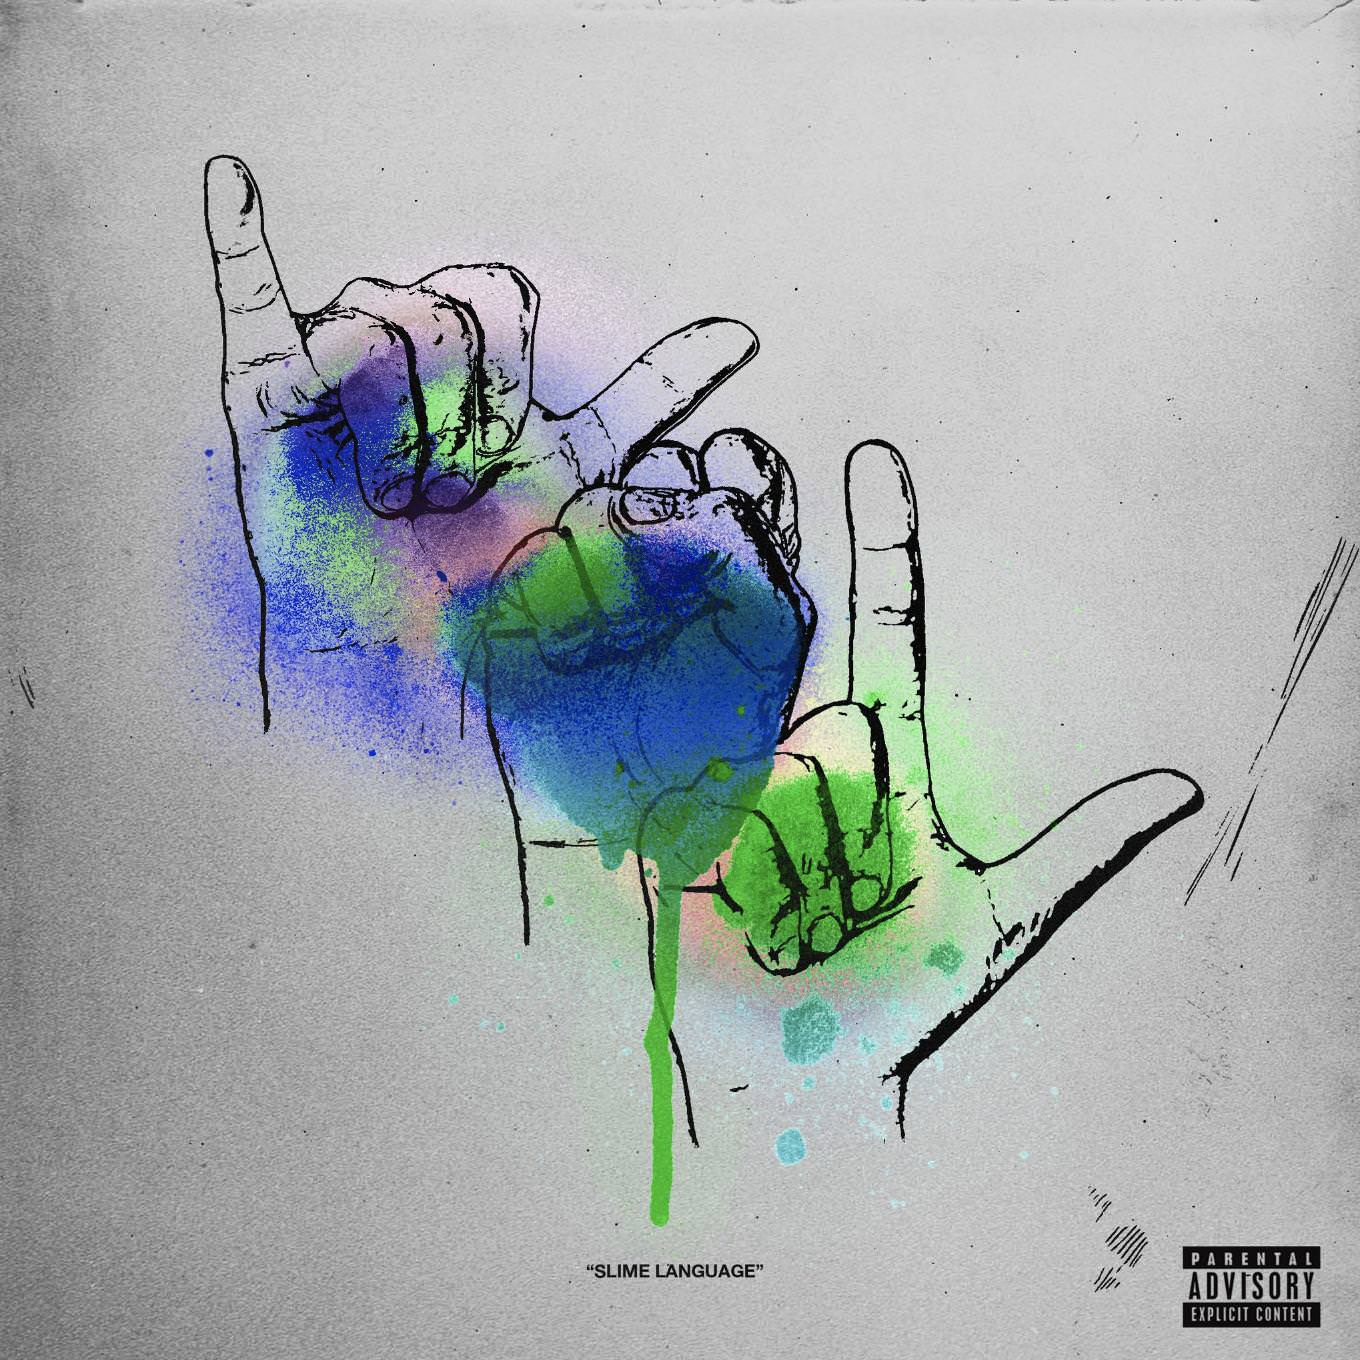 slime language cover art